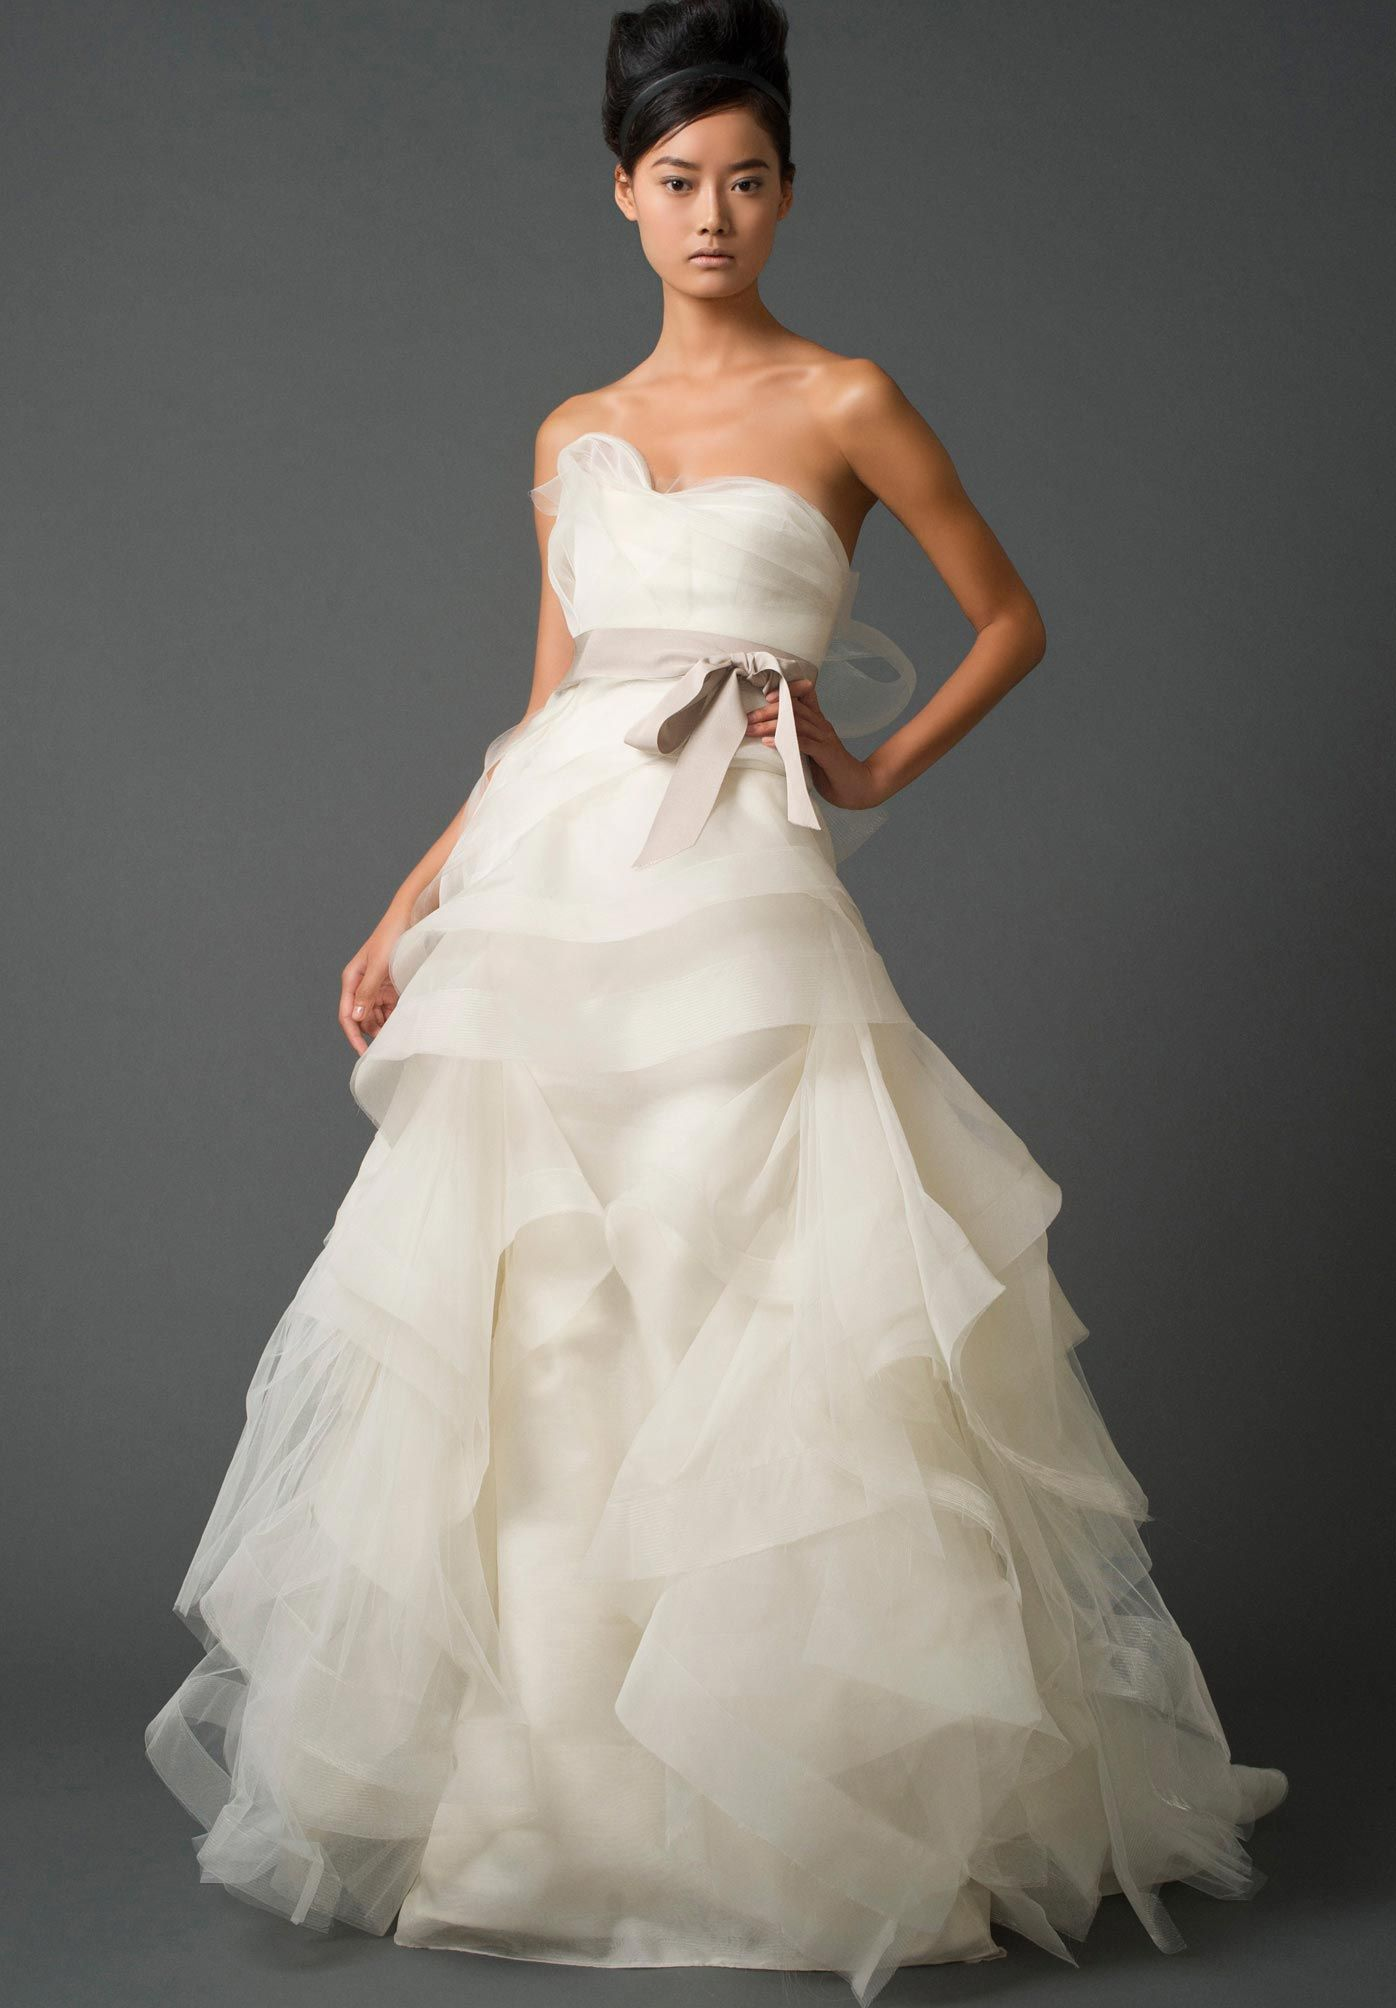 Vera Wang-I adore the bottom. I will certainly be wearing one of her designs on my big day!